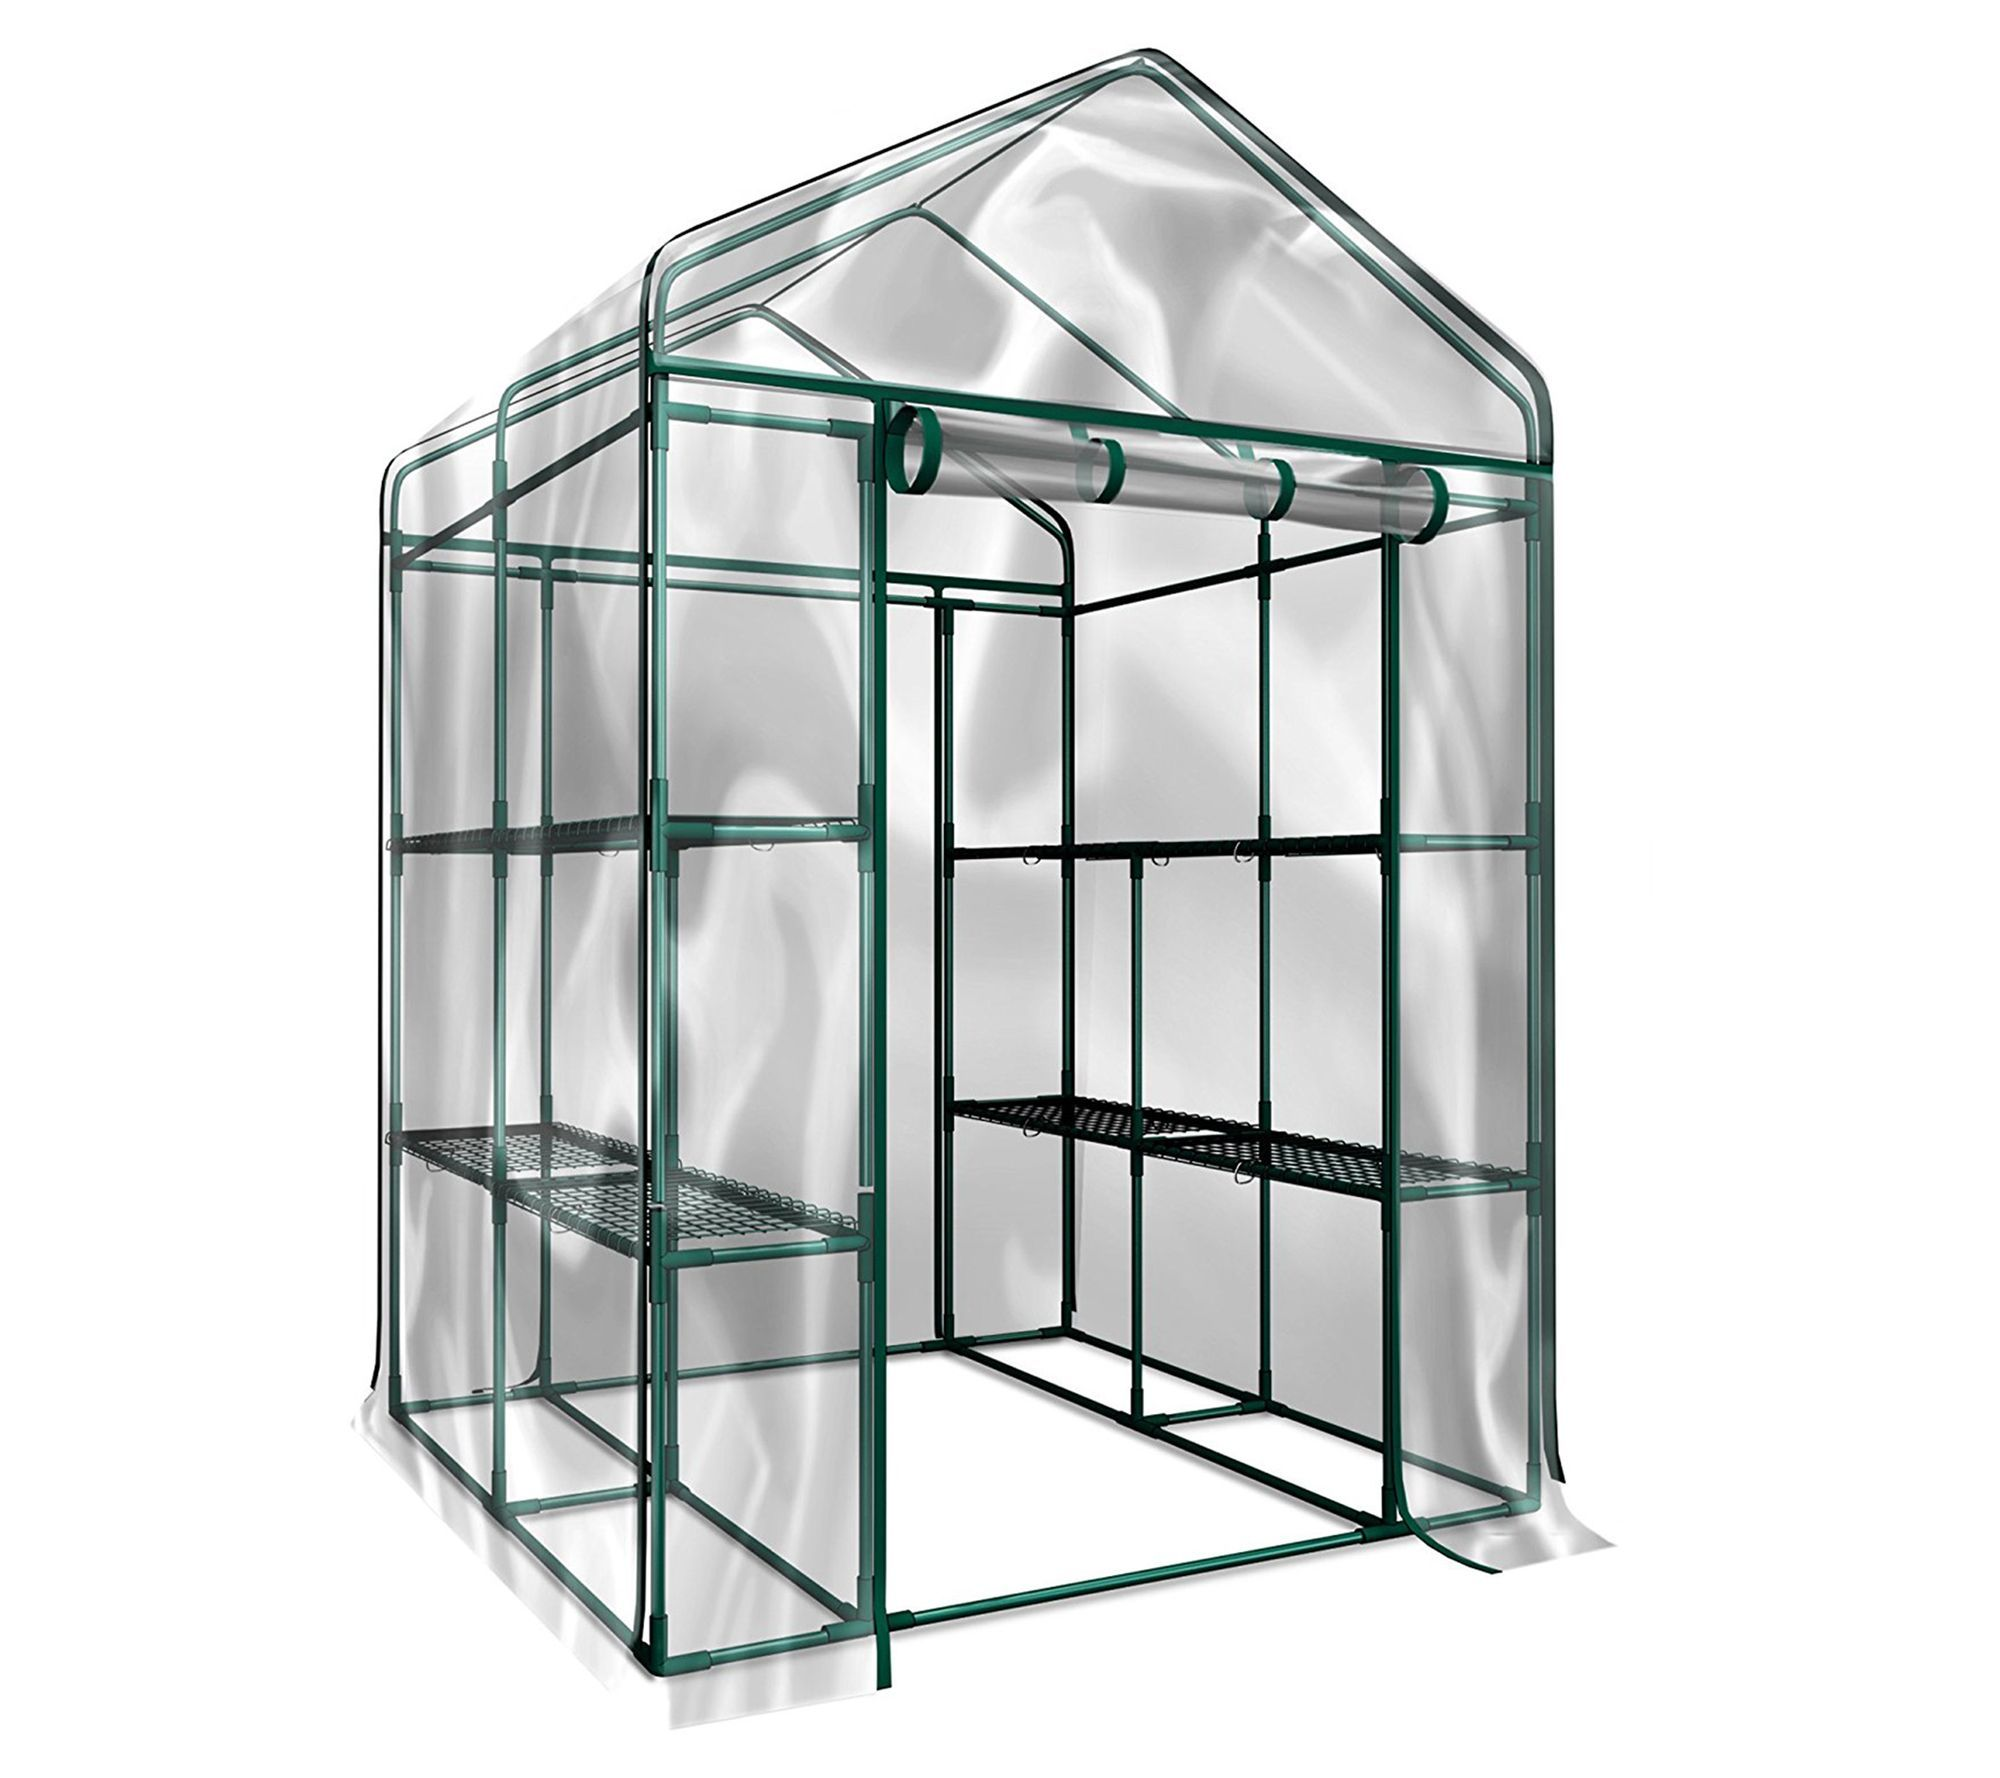 The Walk In Greenhouse By Home Complete Qvc Com In 2020 Walk In Greenhouse Diy Greenhouse Home Greenhouse